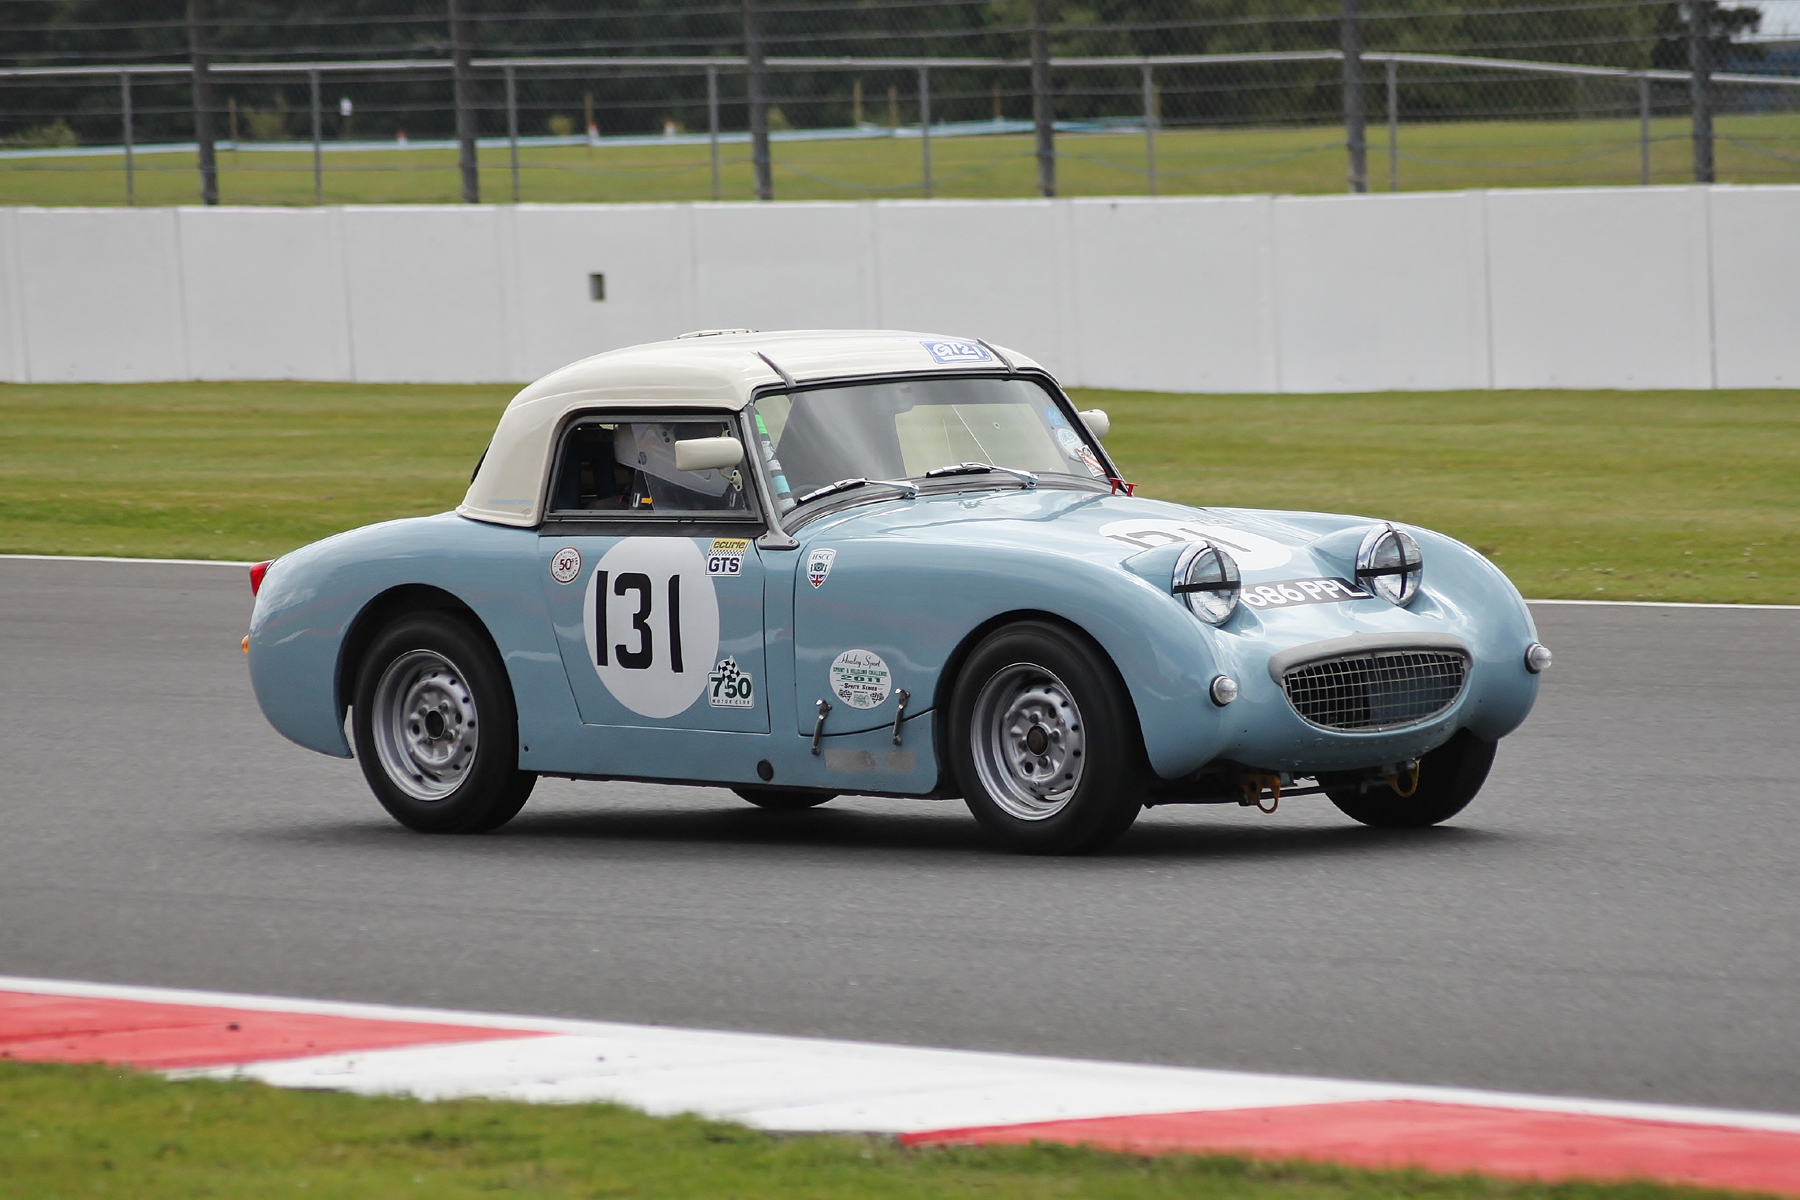 John Tewson - Austin Healey 'Frogeye' Sprite                                                       Photo - Bob Bull, Tripos media